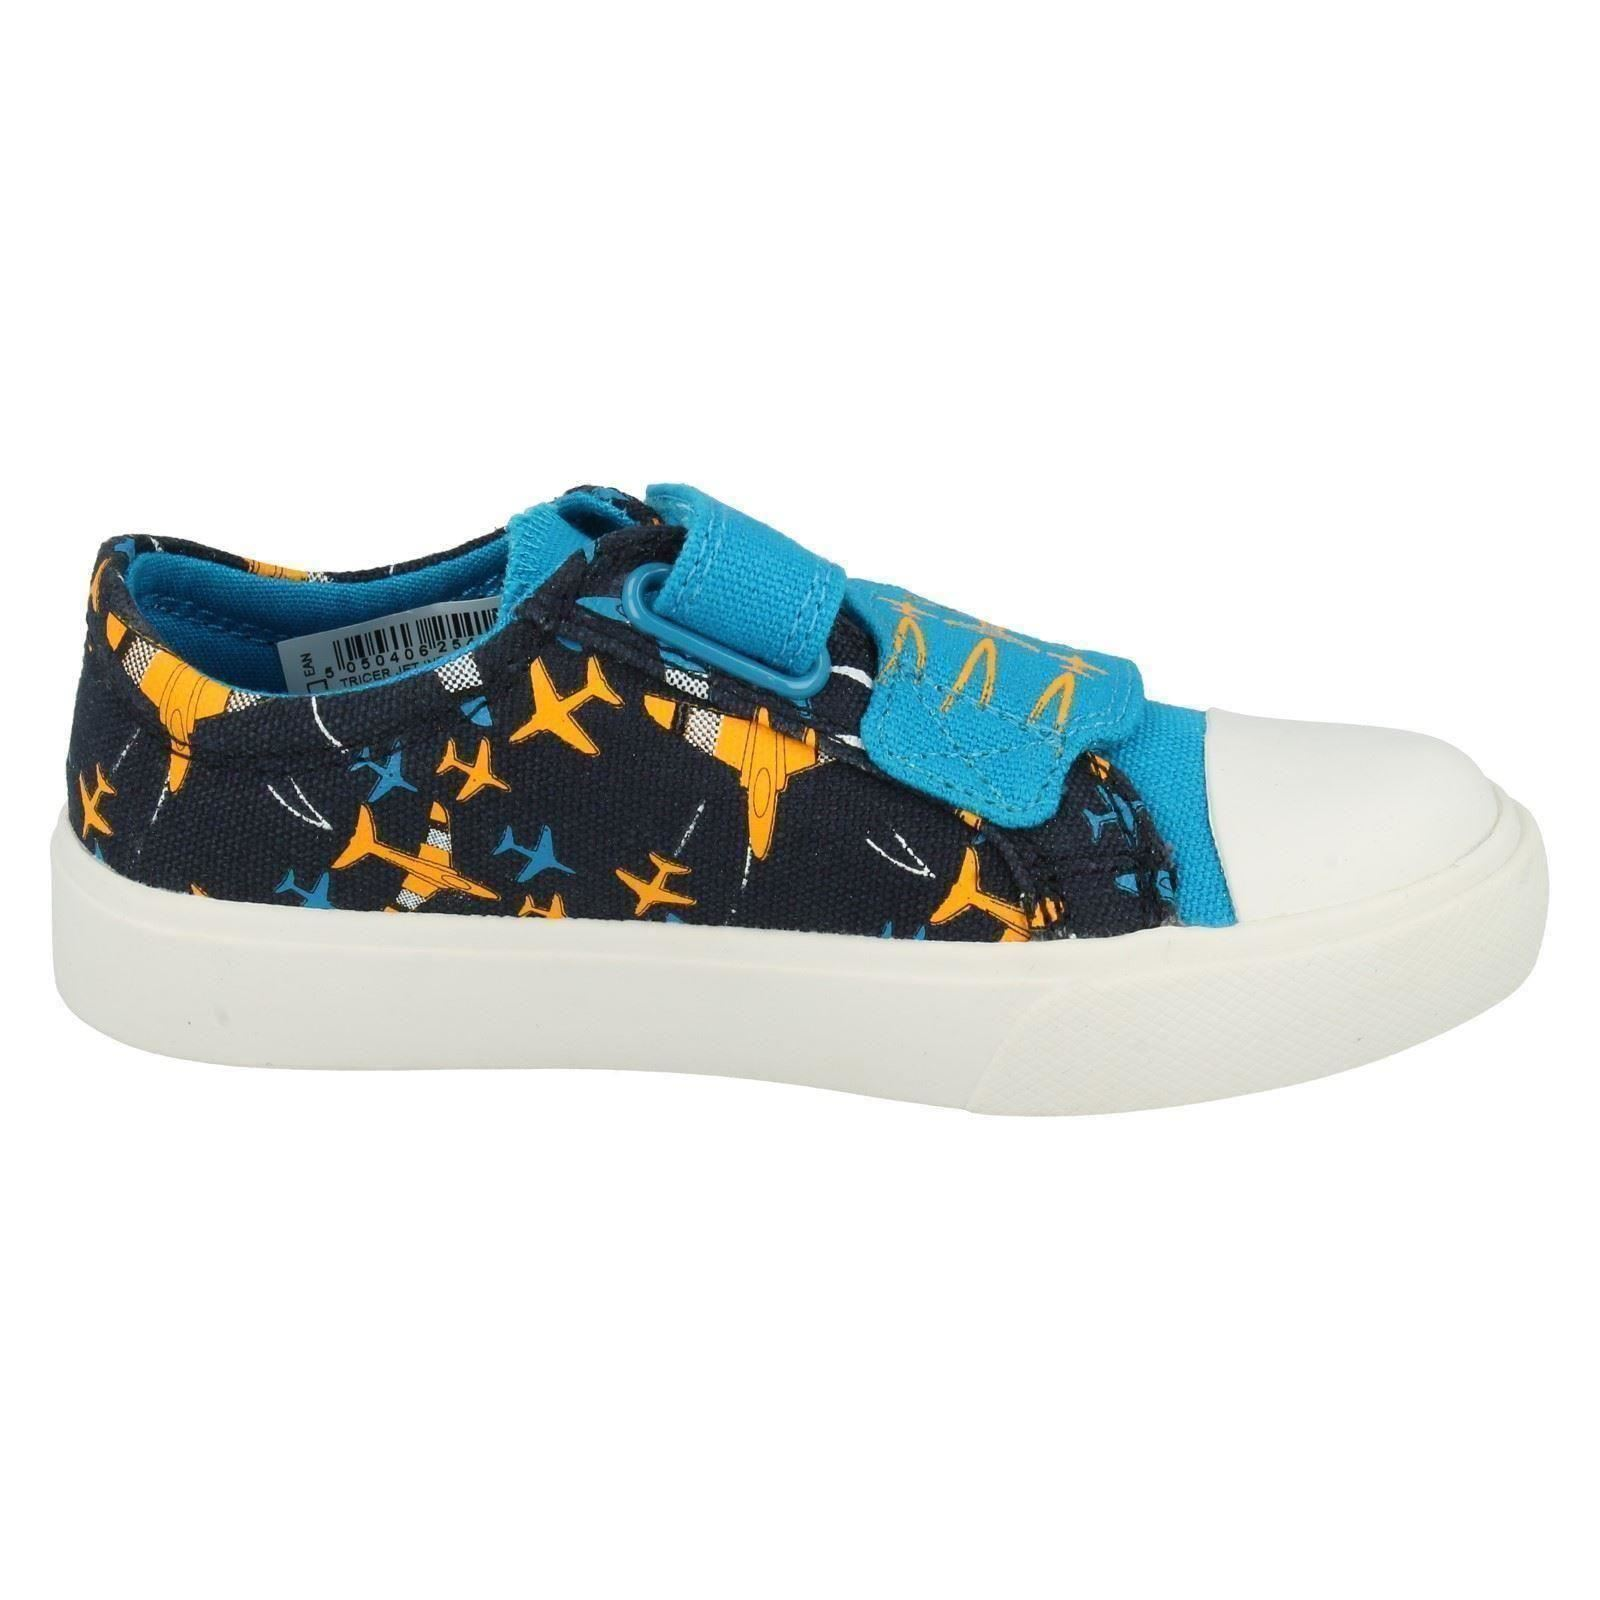 Boys Clarks Canvas Shoes Style - Tricer Jet